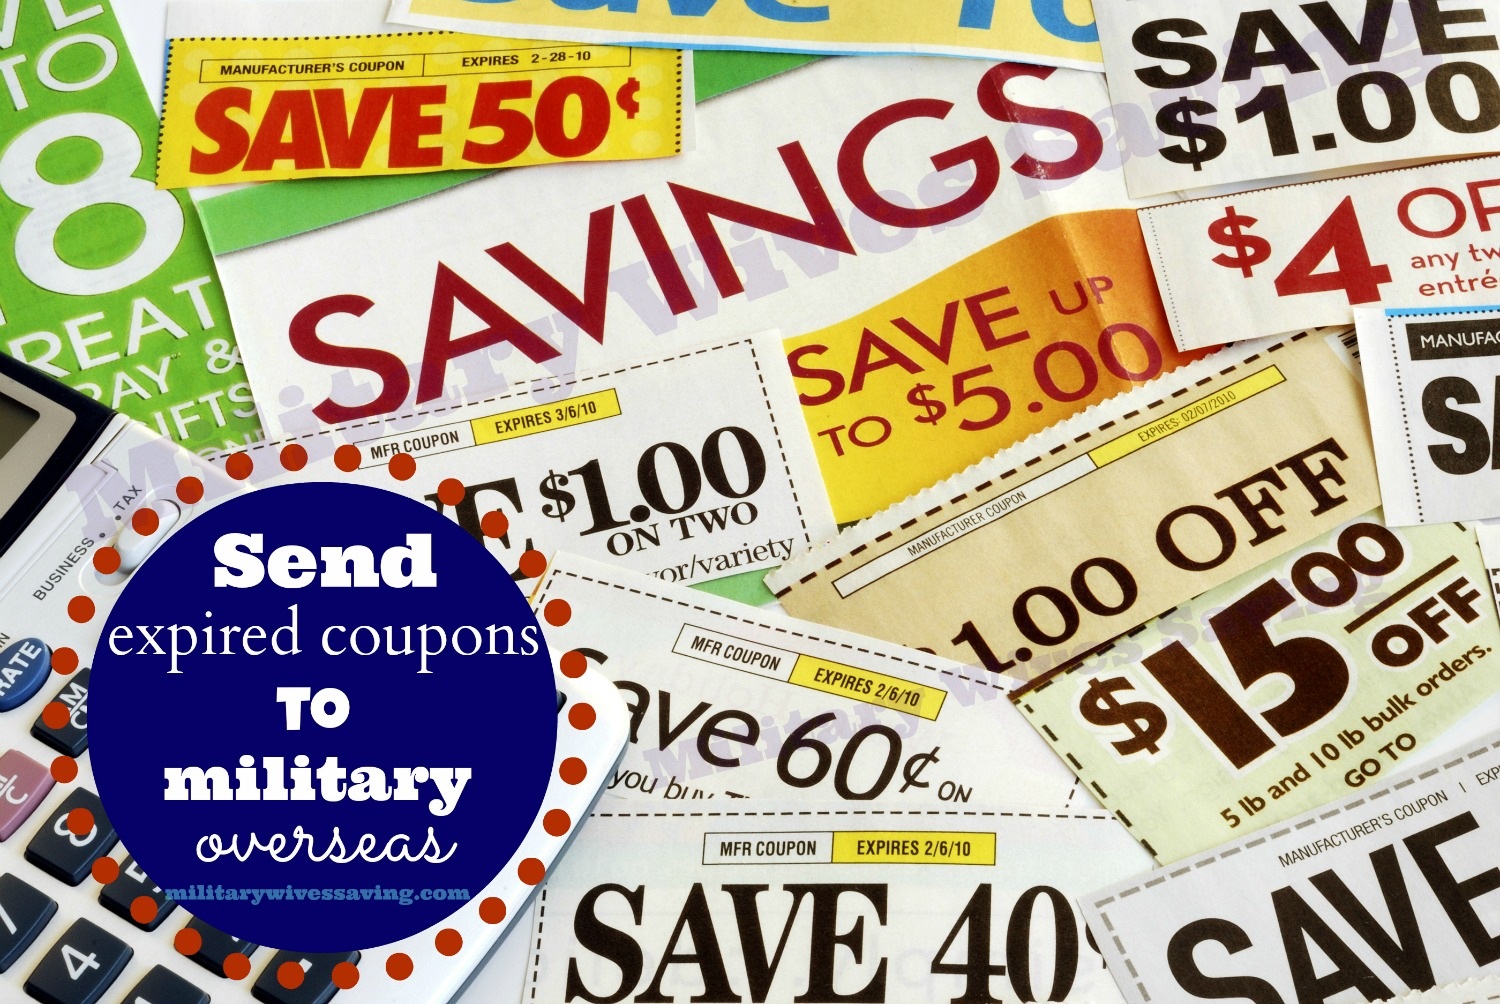 Send expired coupons to military overseas